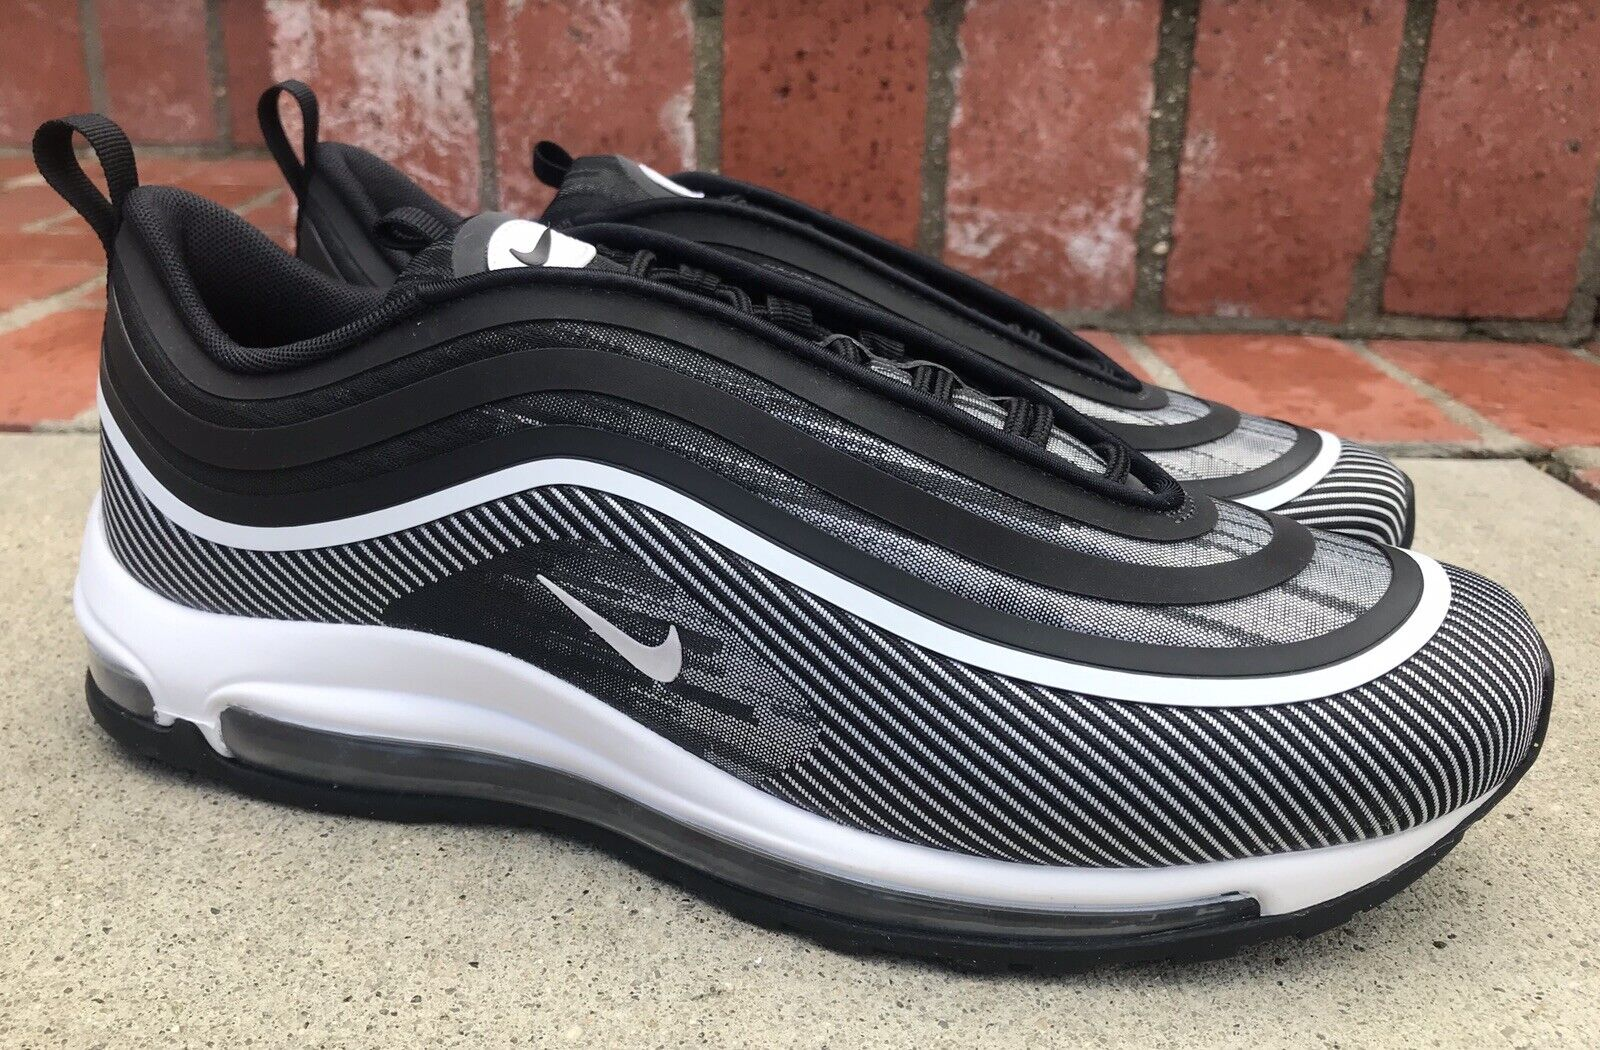 Nike Air Max 97 Ultra UL '17 Size 7 Mens Black White 918356-006 Running Casual